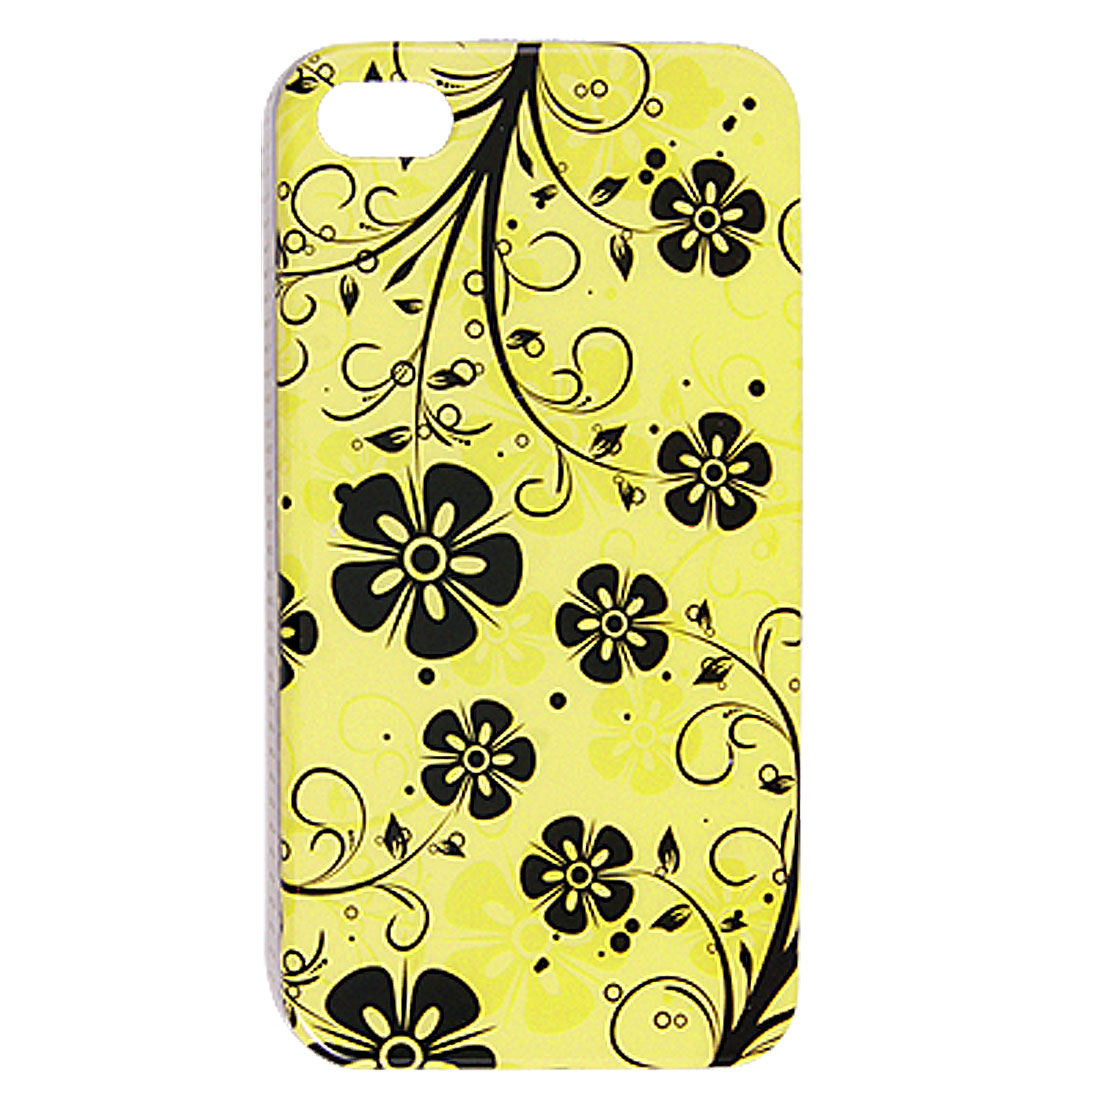 Black Flower Pattern IMD Yellow Plastic Base Case for iPhone 4 4G 4S